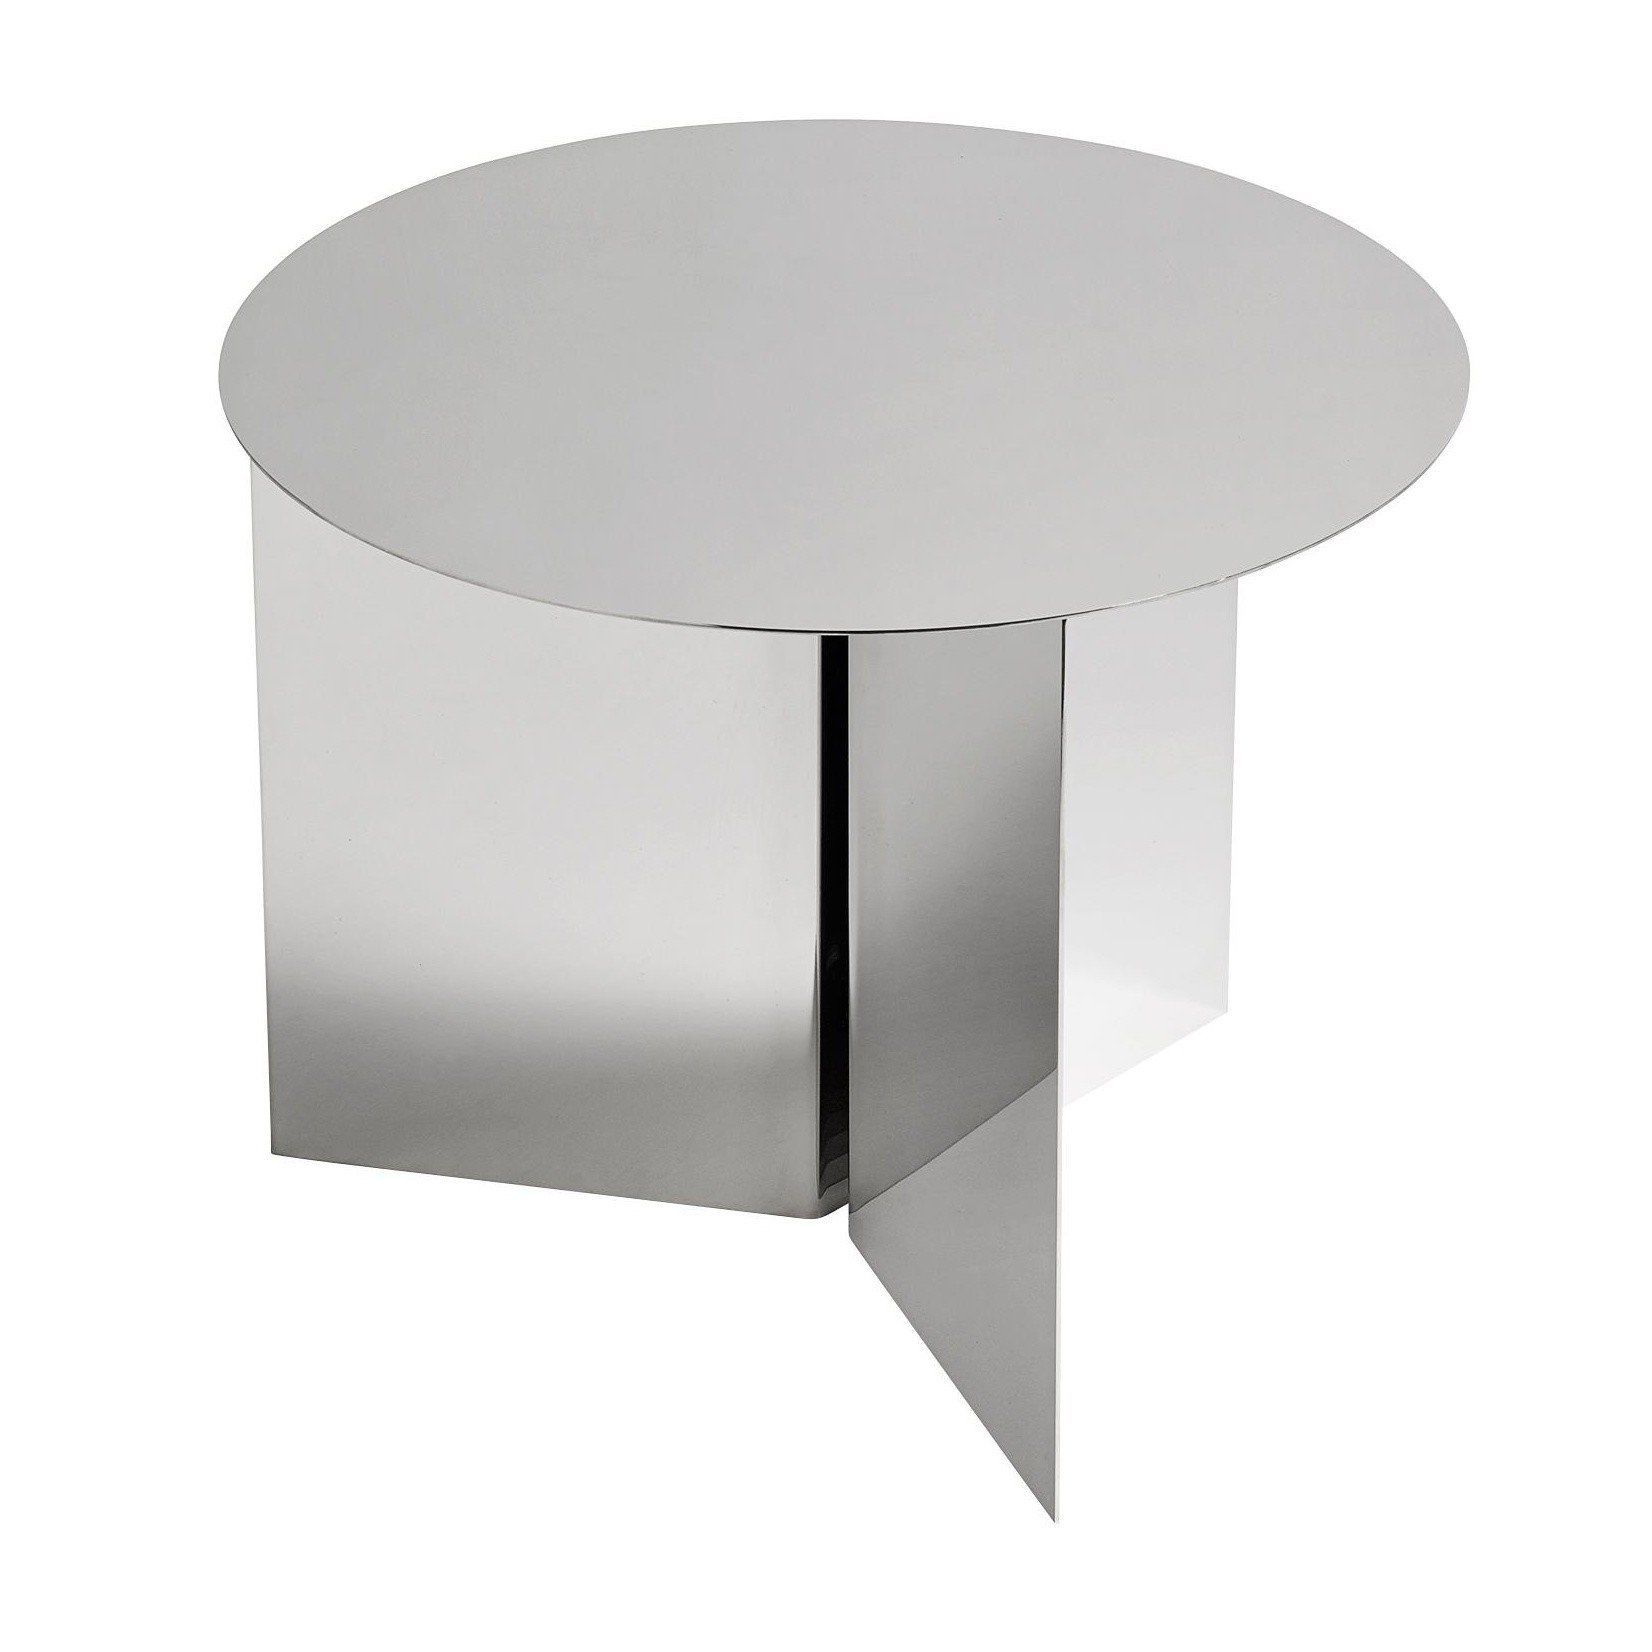 ... HAY   Slit Table Round Side Table   Mirror/polished/H 35.5cm/ ...